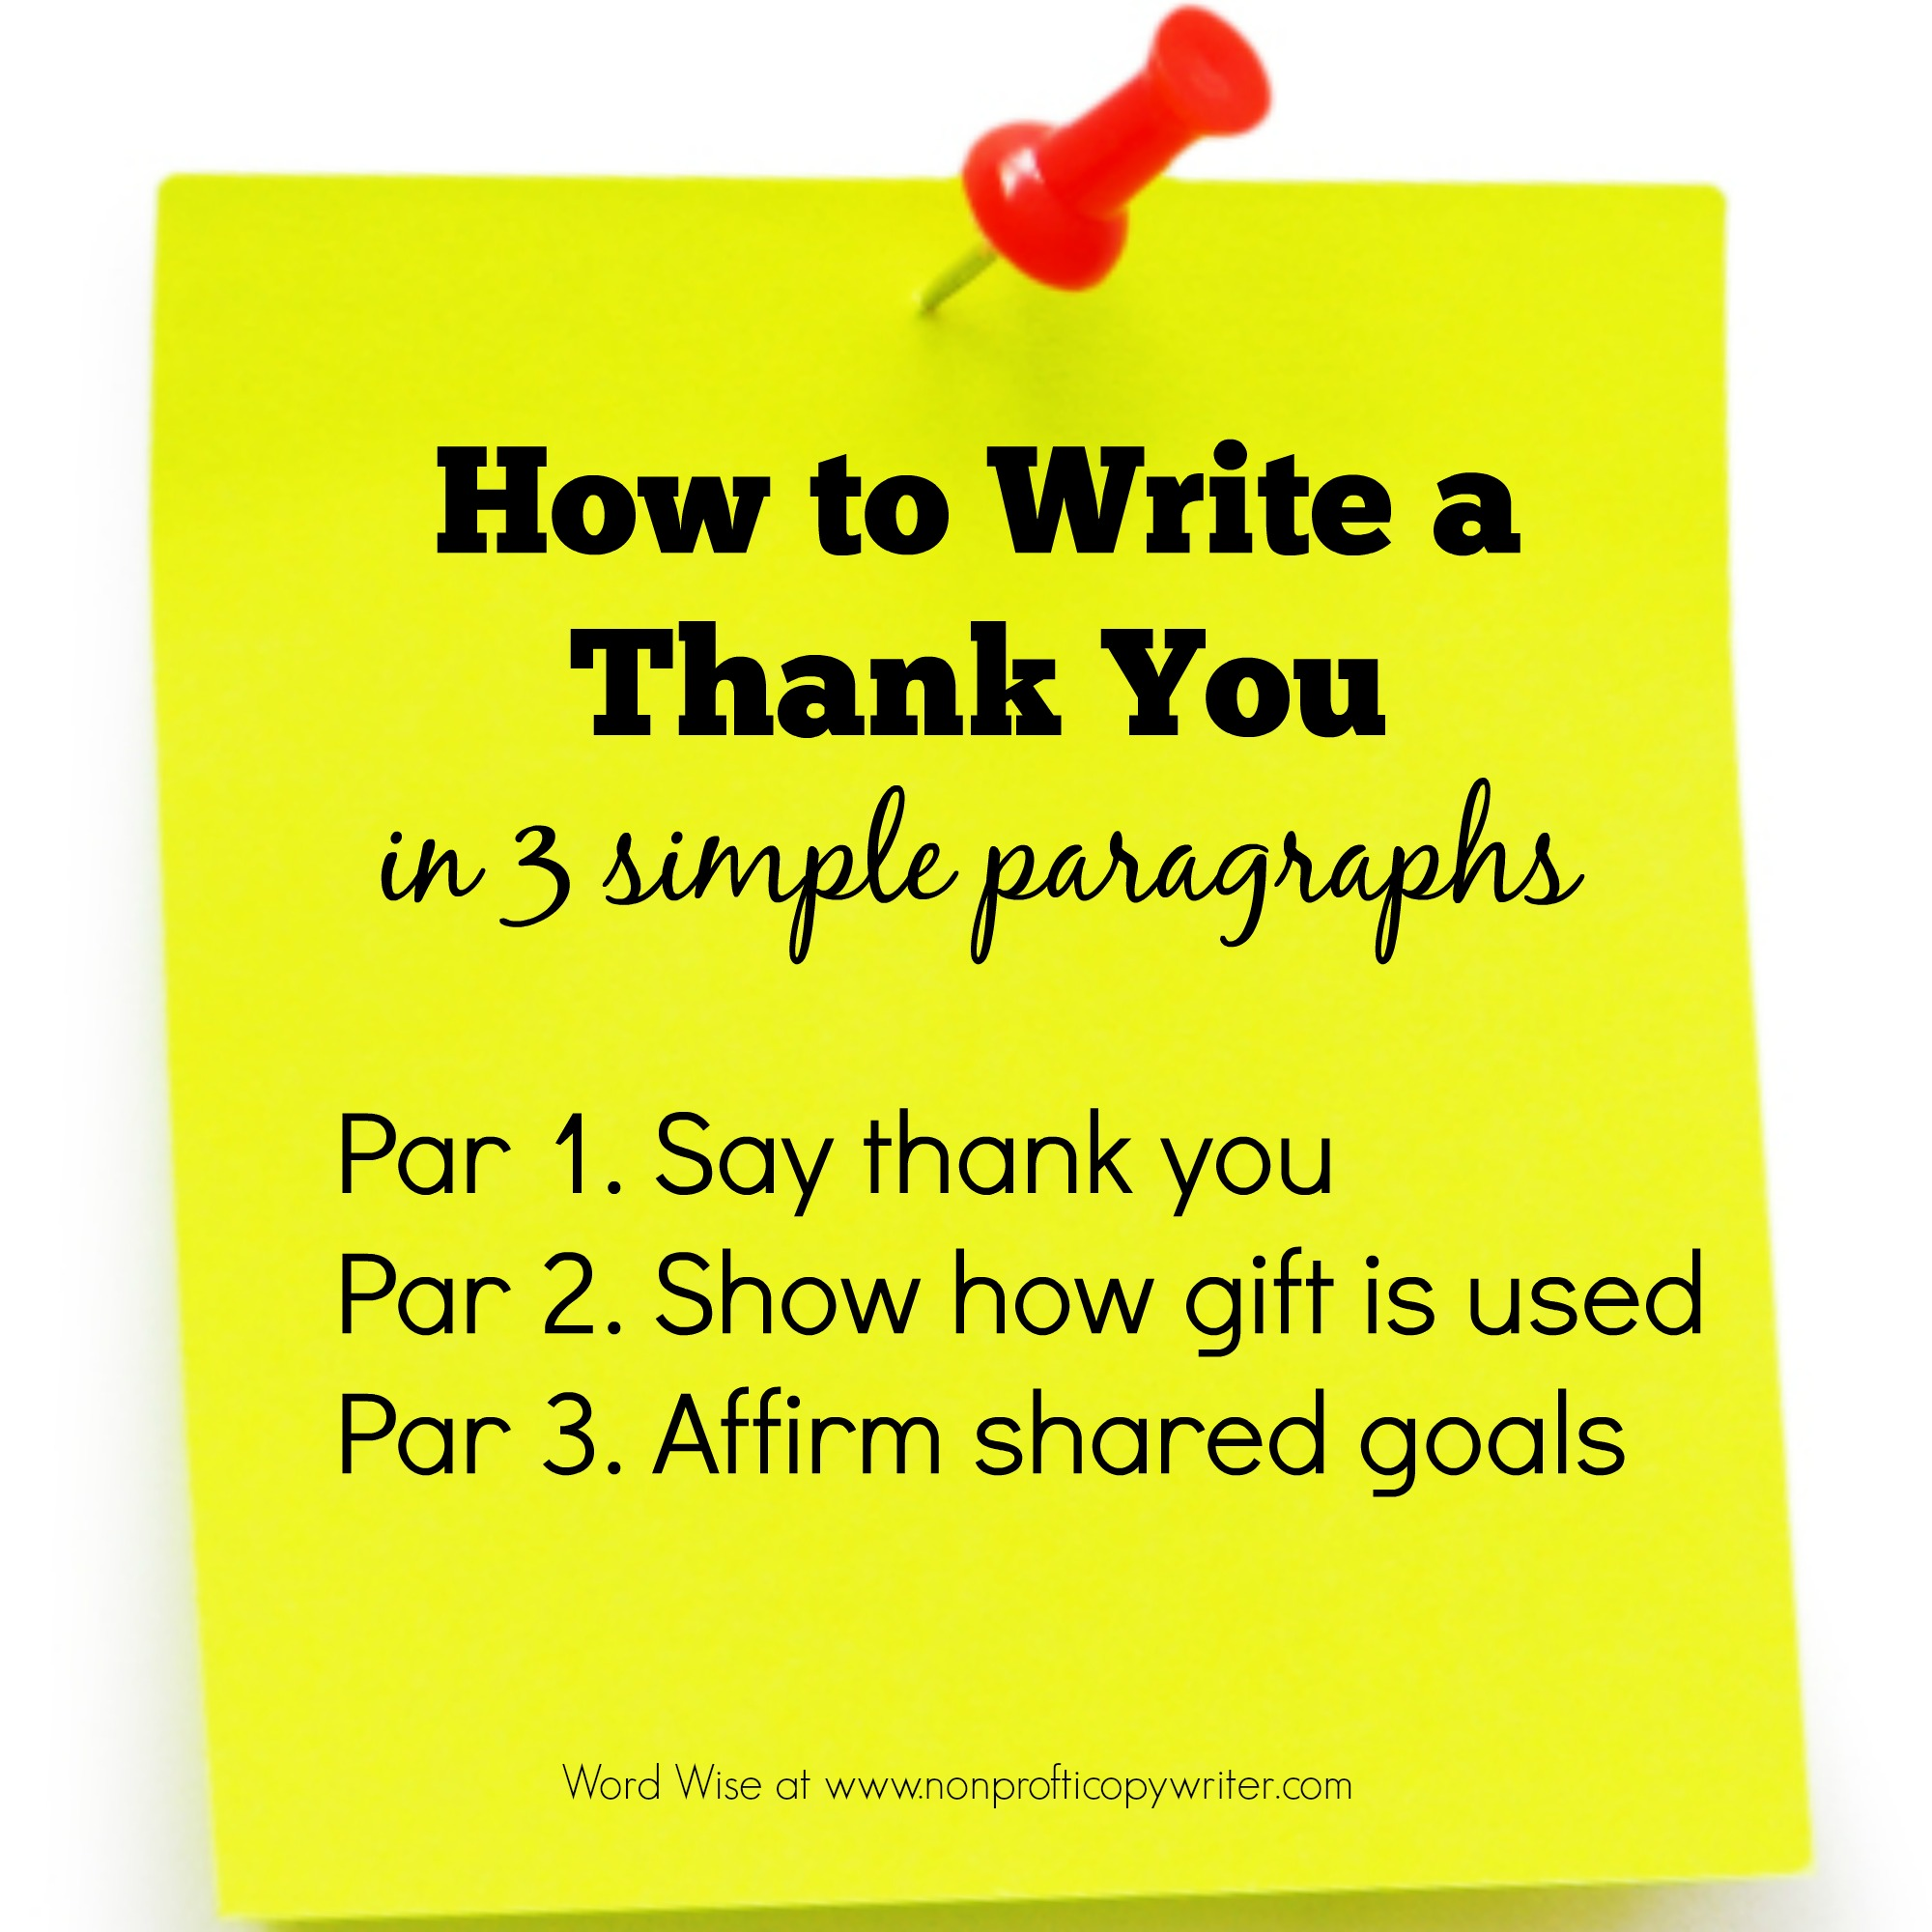 How to write a thank you letter in 3 simple paragraphs with Word Wise at Nonprofit Copywriter